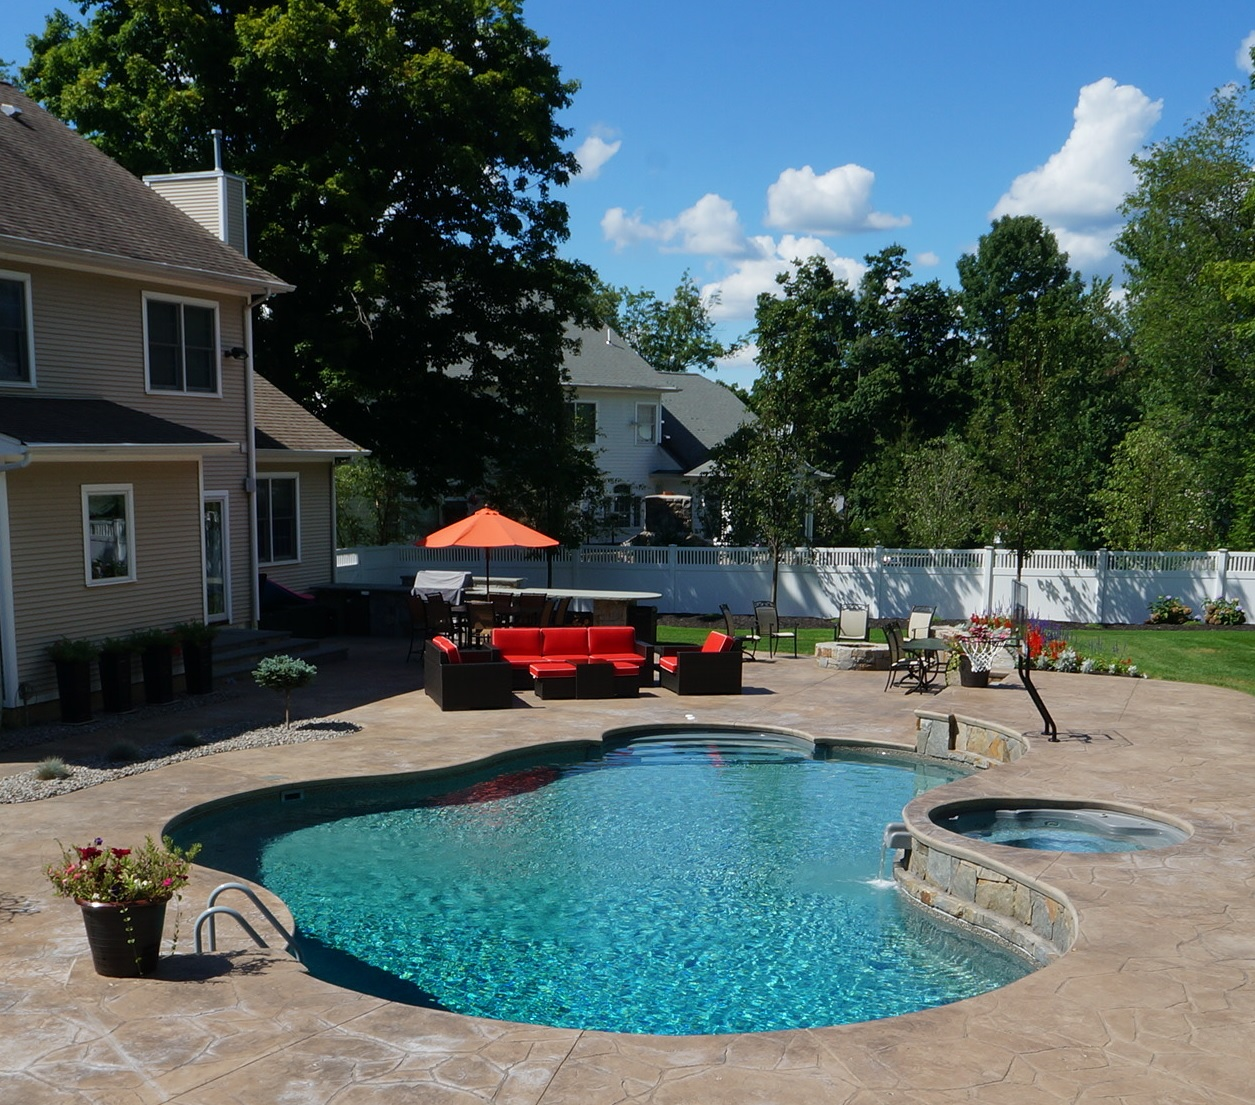 Inground Pools in Danbury, CT - Nejame & Sons